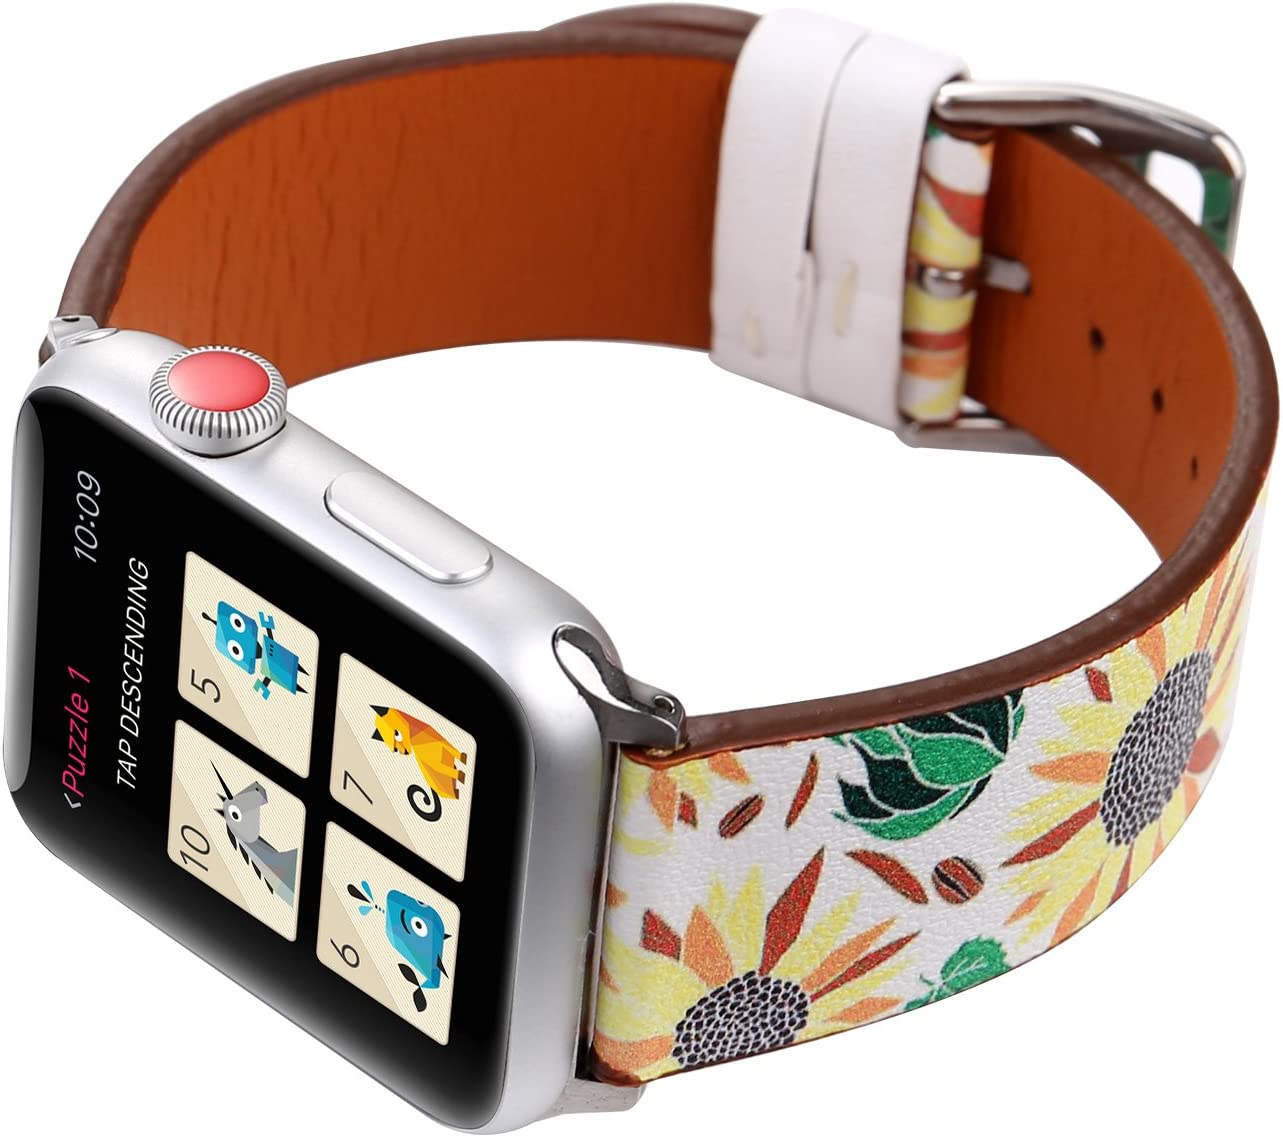 Amazon Com Wonmille Bands For Apple Watch 38mm Sequins Floral Printed Leather Replacement Strap Wrist Watch Band For Apple Watch Iwatch Series 1 Series 2 Series 3 Sunflower 38mm